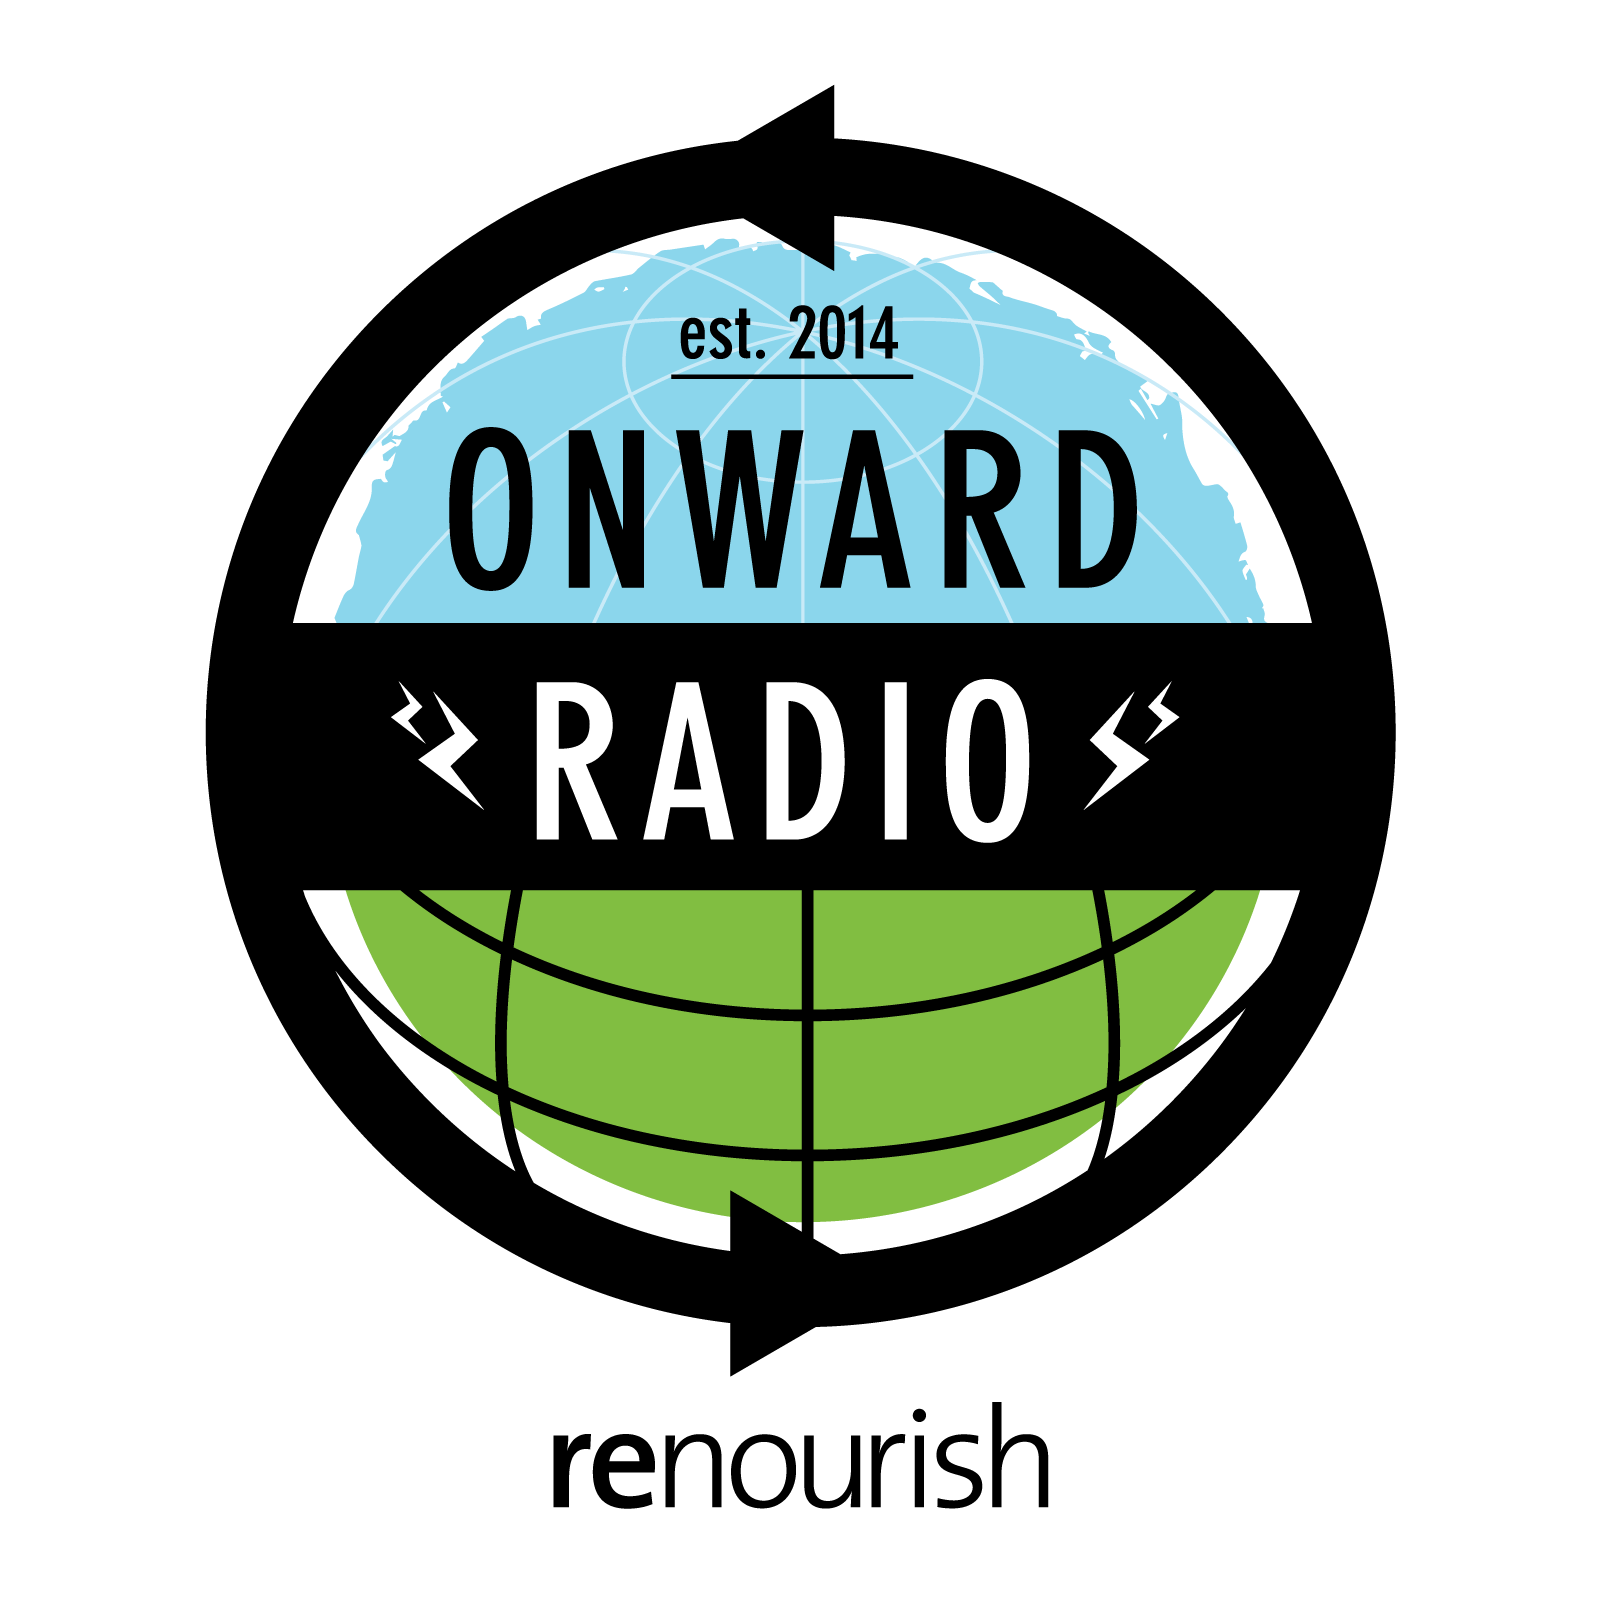 onwardradio